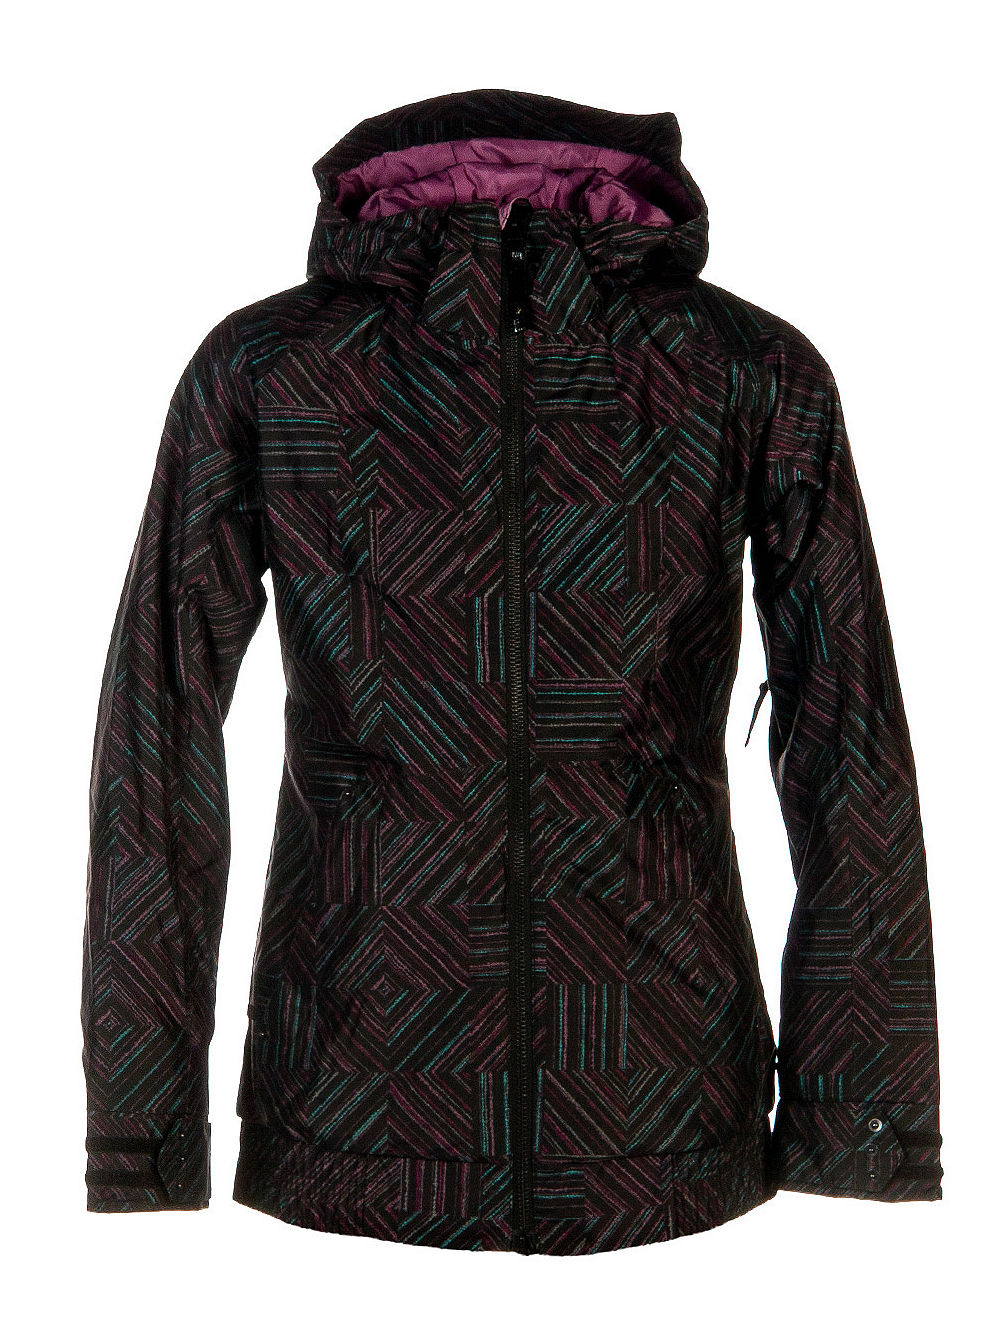 Twc Hot Tottie Jacket Women